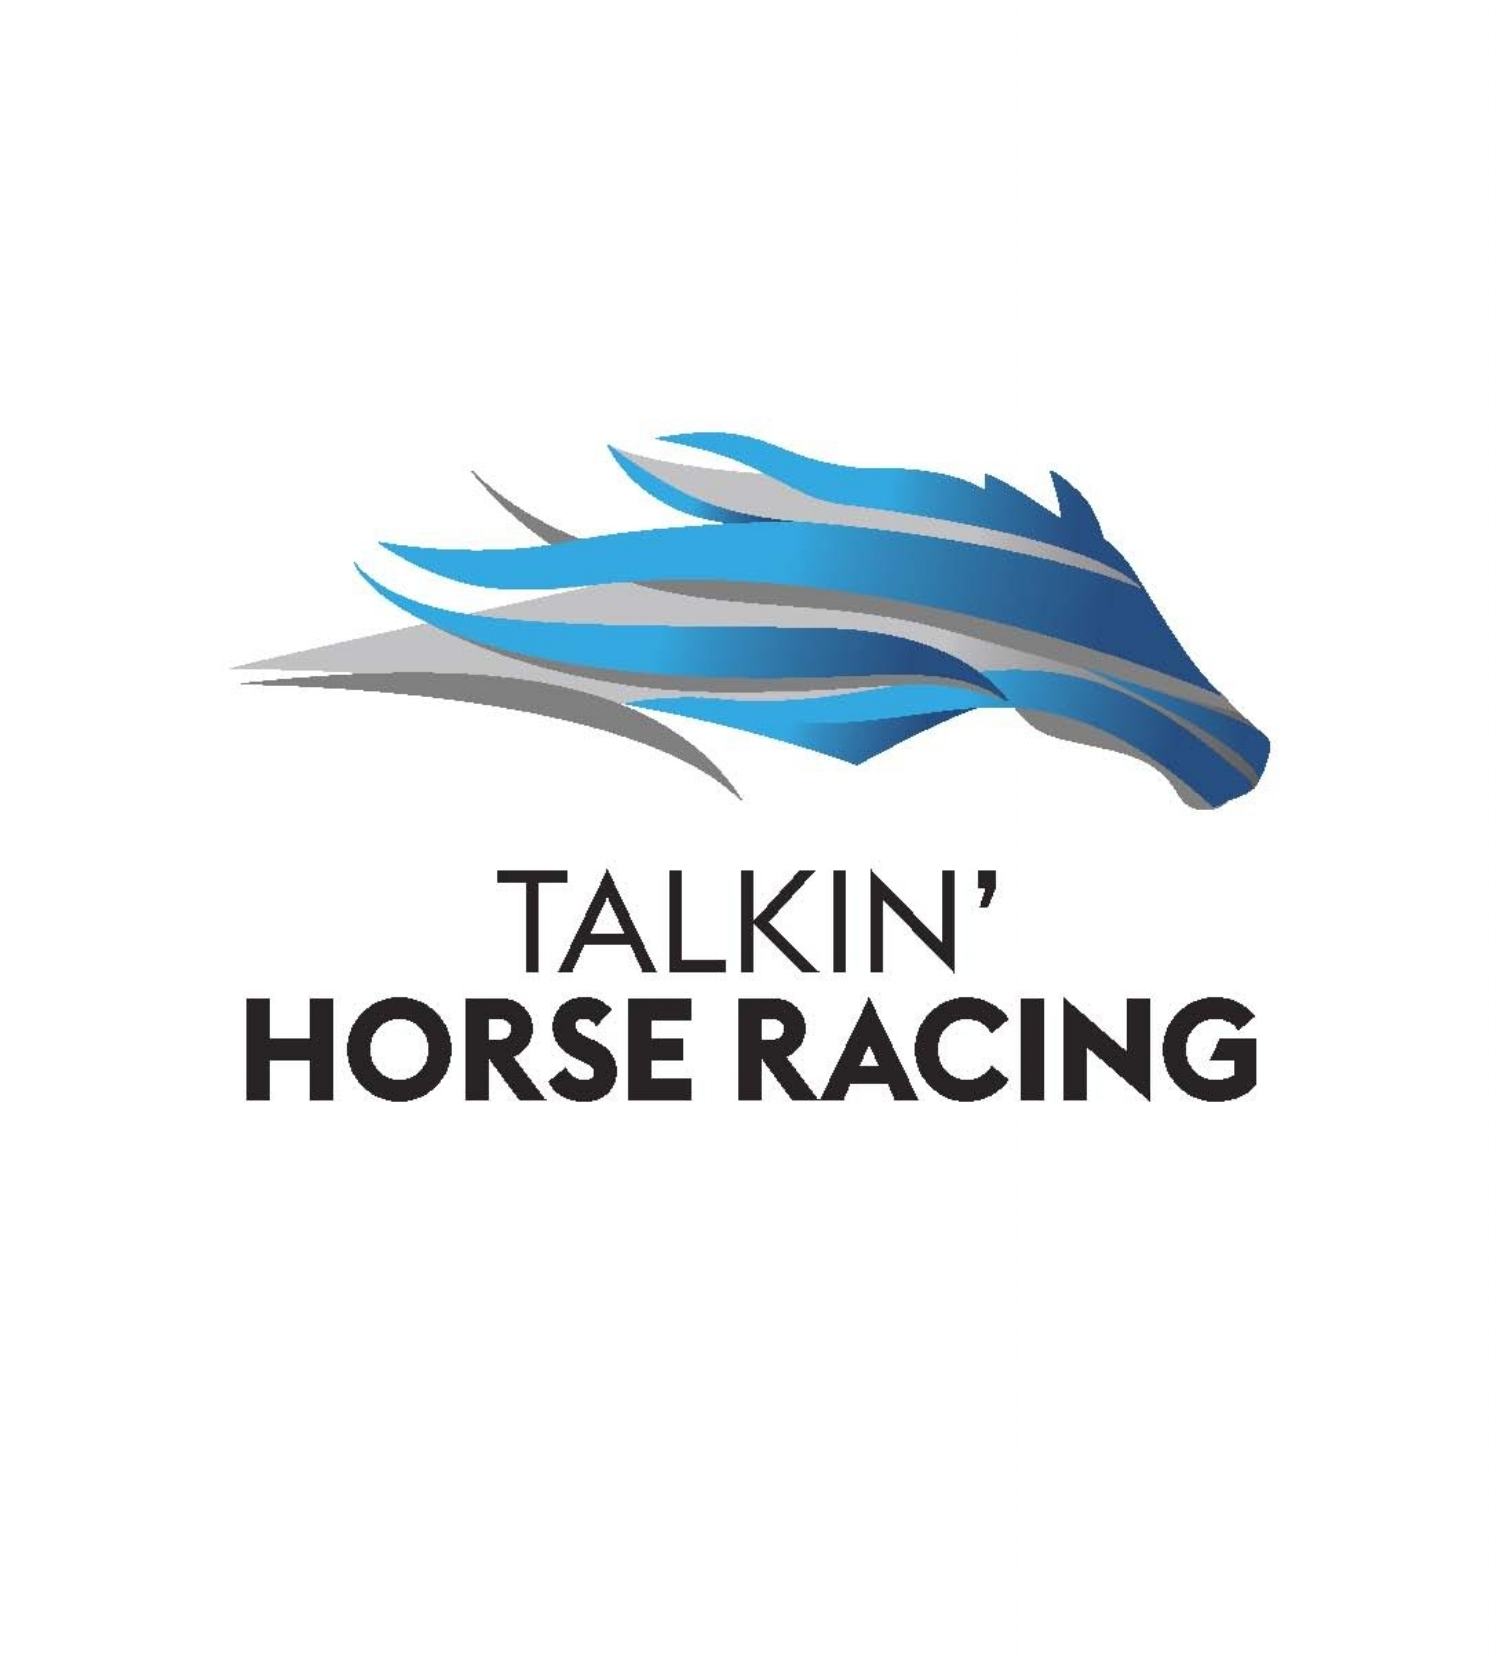 Talkin' Horse Racing